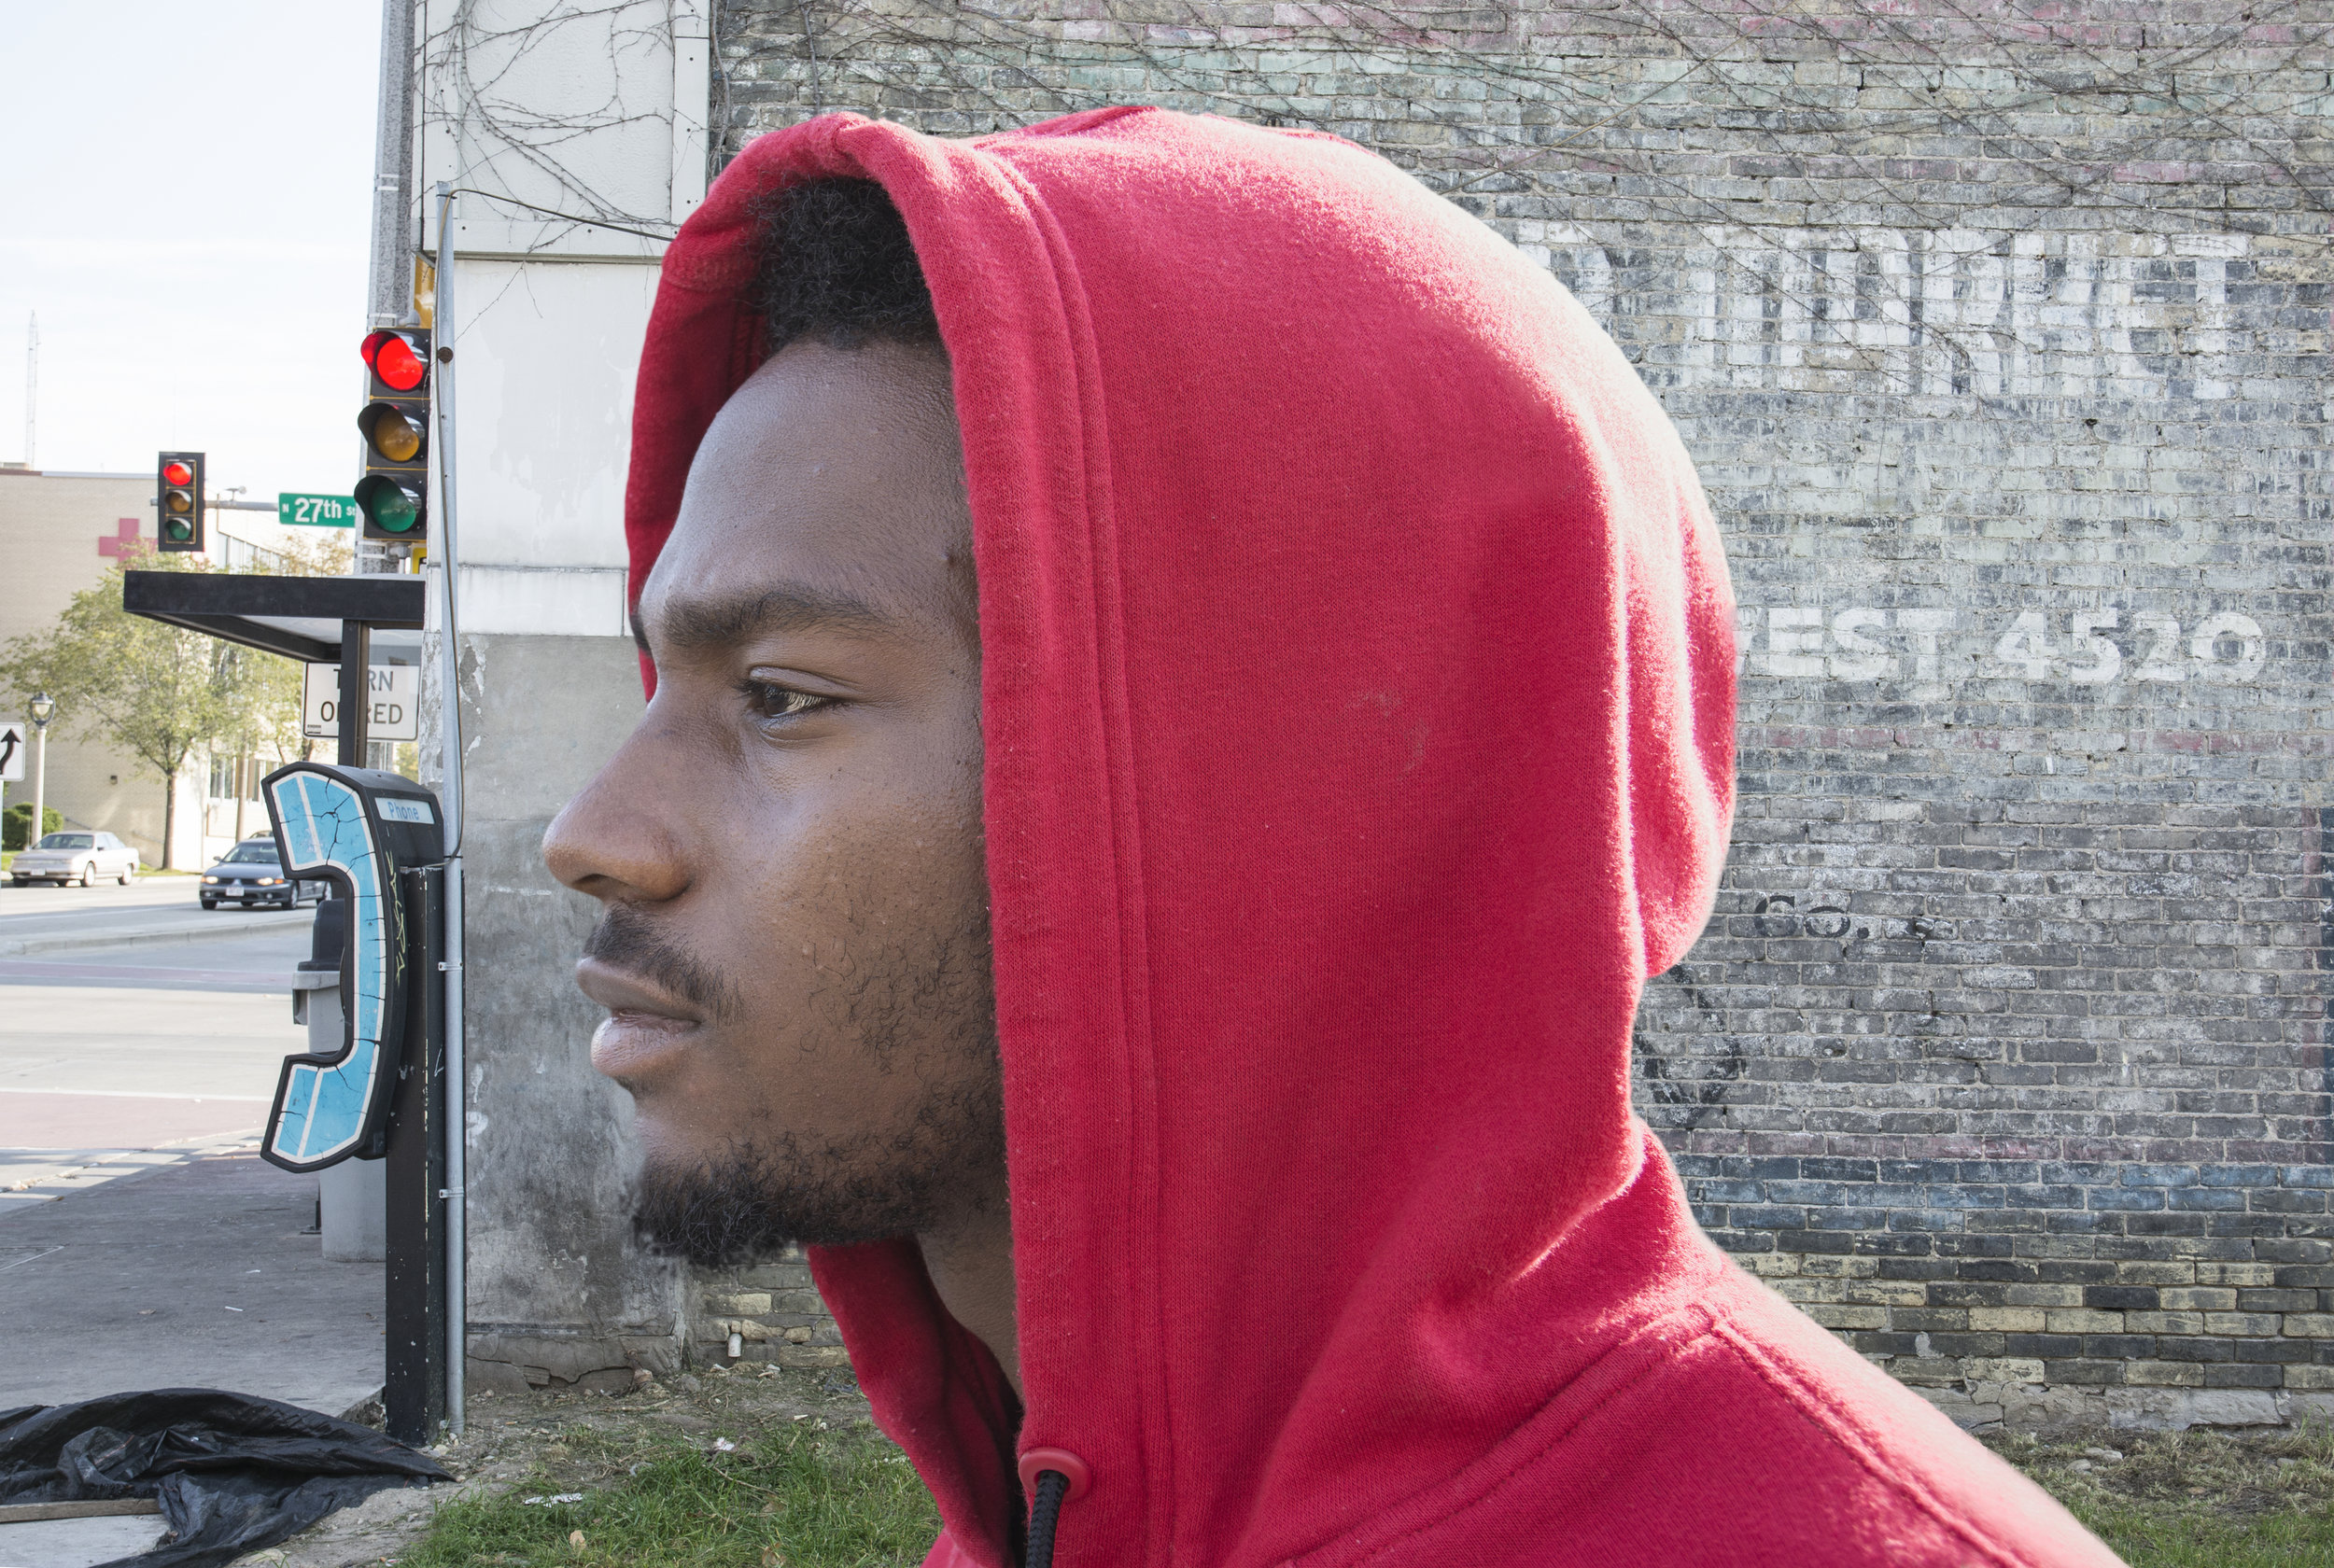 Ronnie grew up in the Milwaukee inner city,raised by aunts and relatives. He went to Bradley Tech High School and studied photography and medicine, neither of which he was later unable to earn a living. He now survives on welfare benefits.